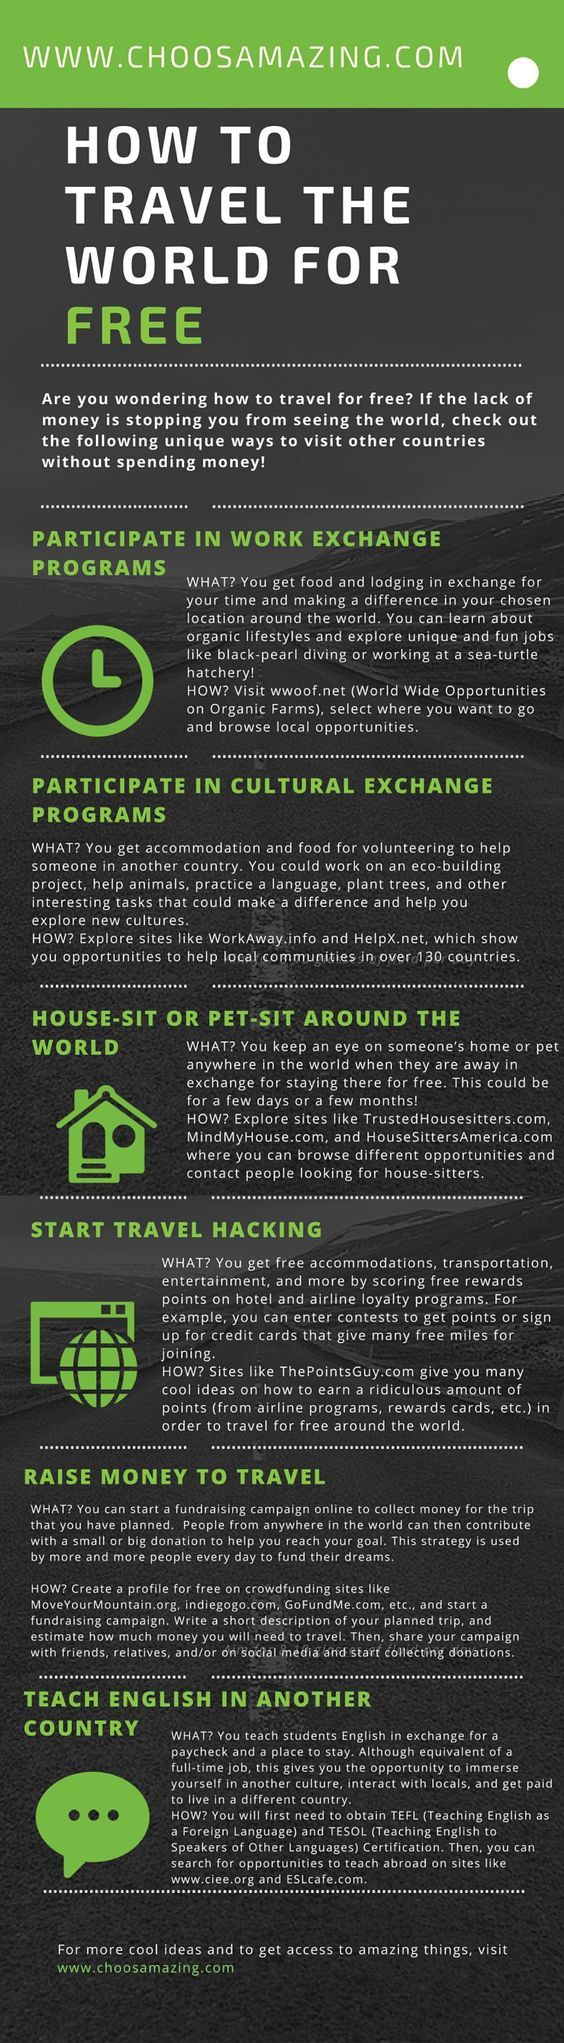 How to Travel the World for Free